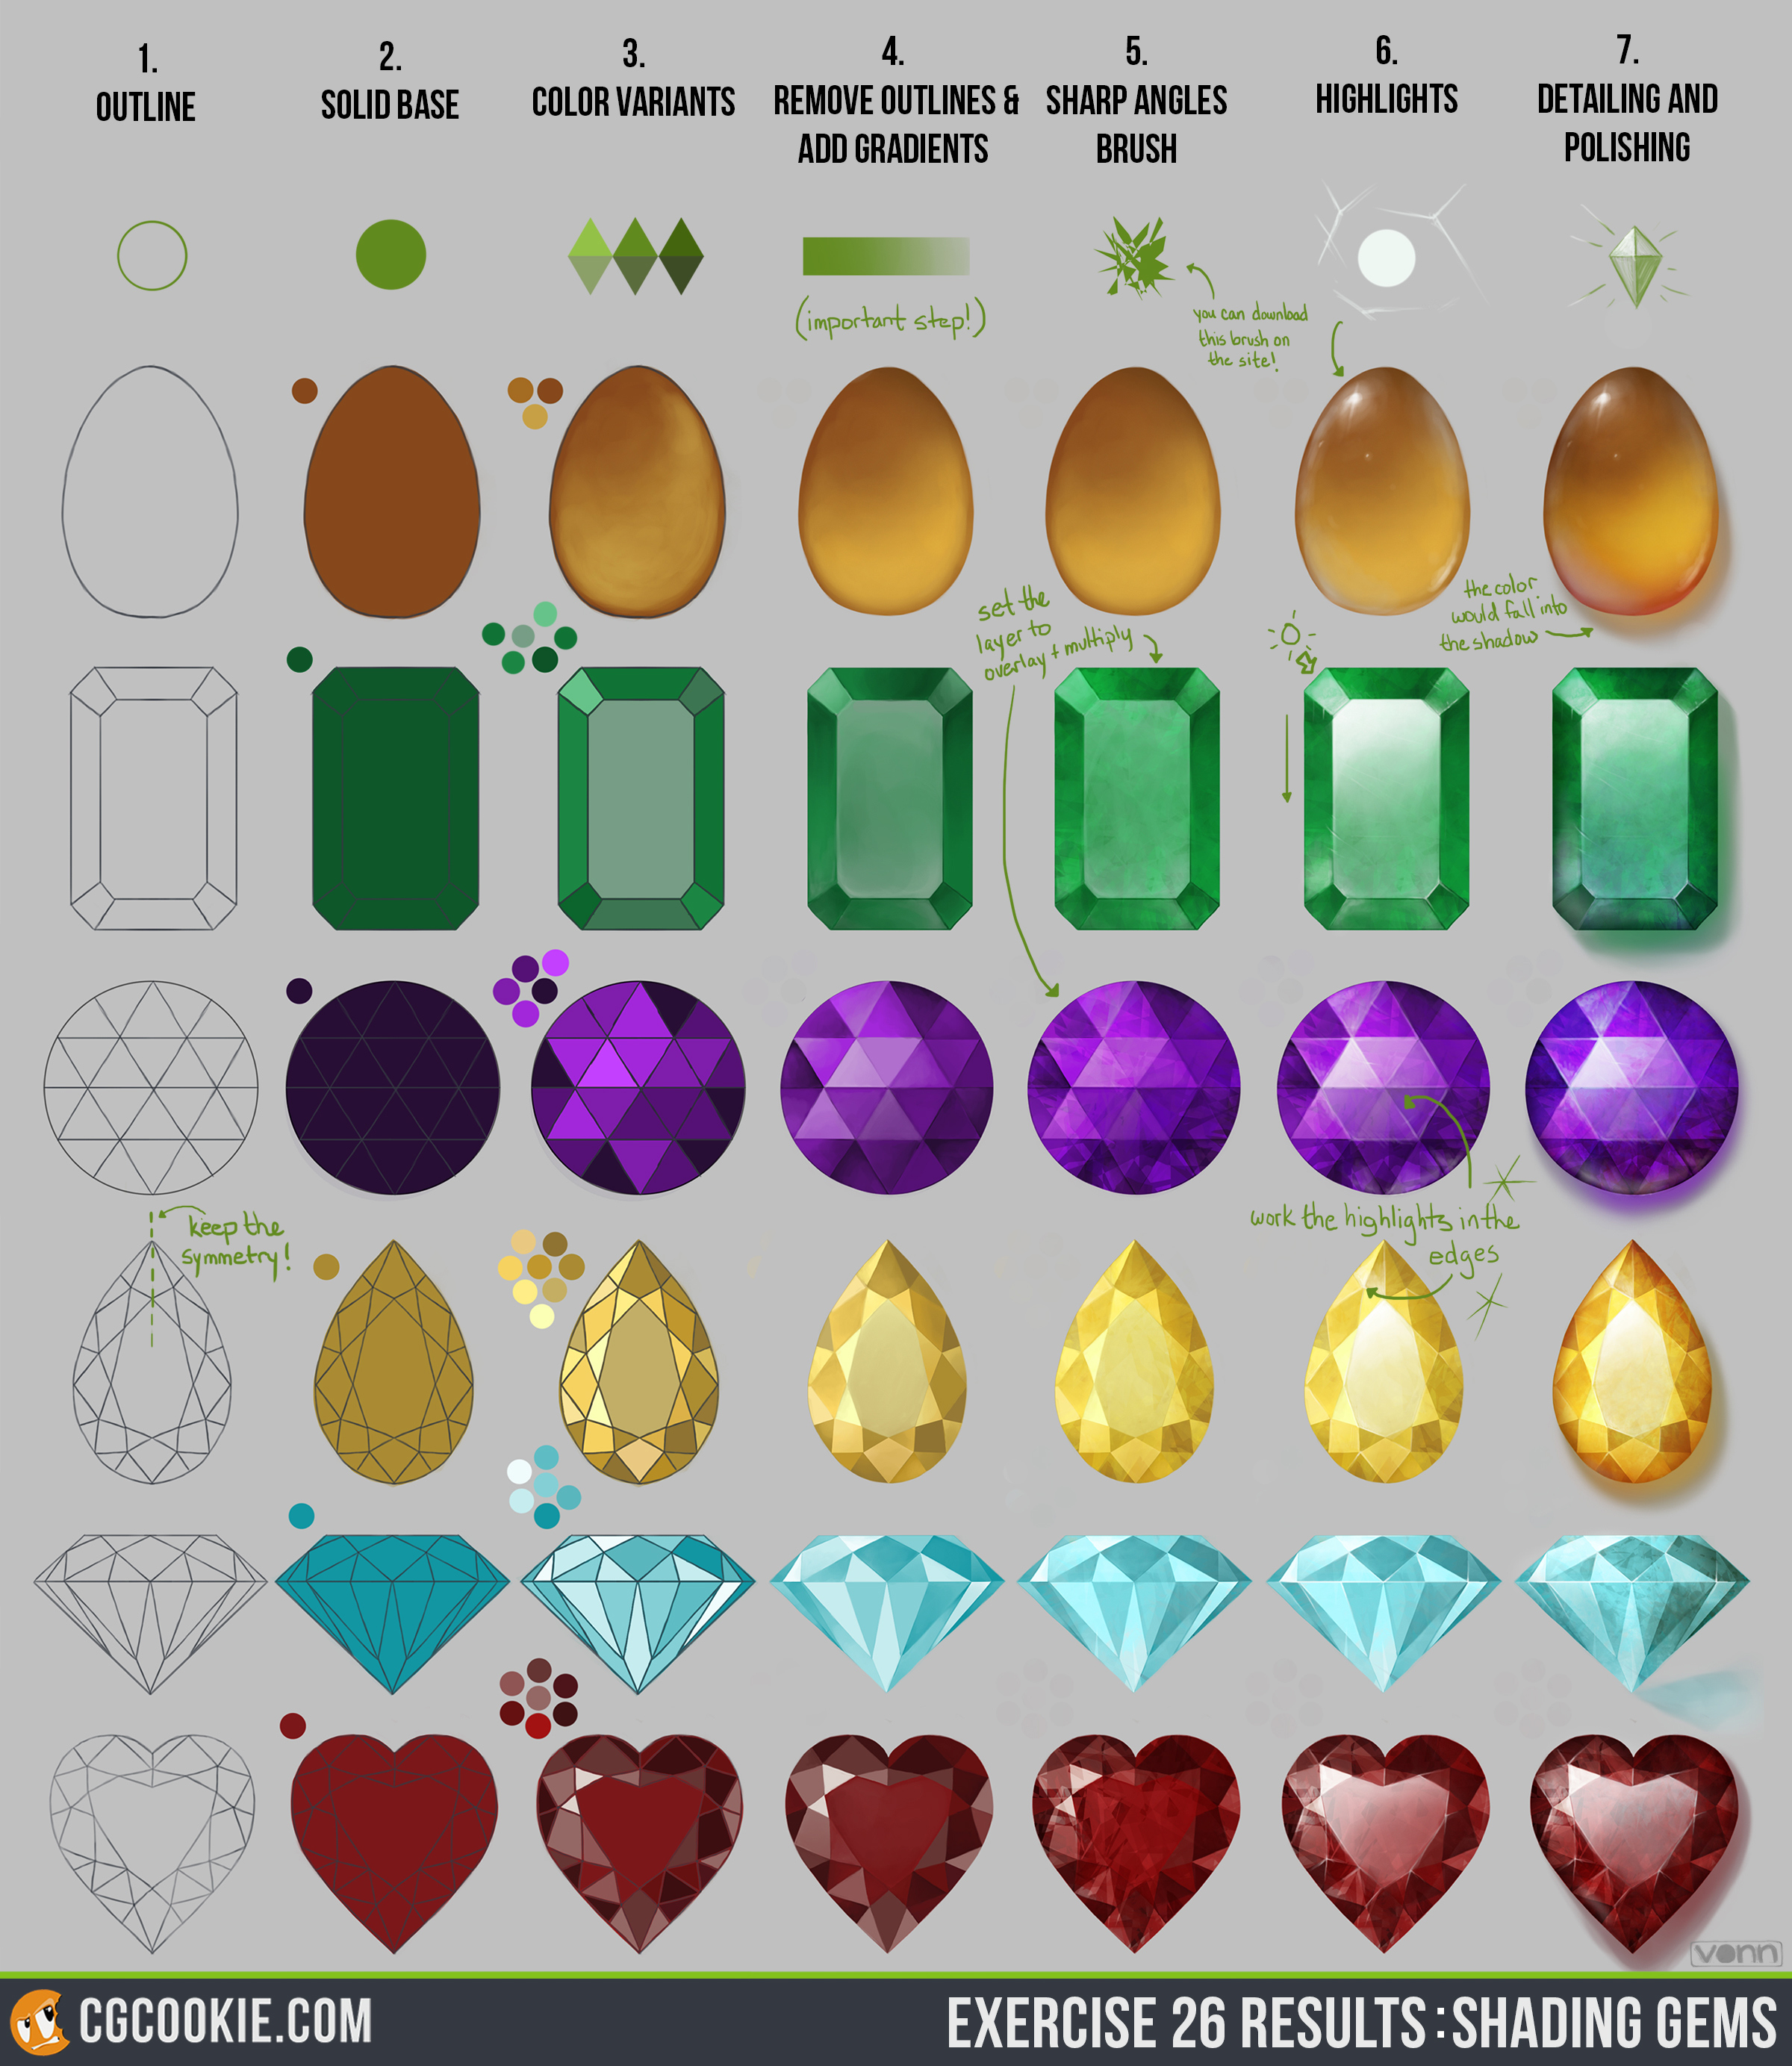 Drawn jewelry wedding ring Shading Cookie Gems CG exercise_26_results